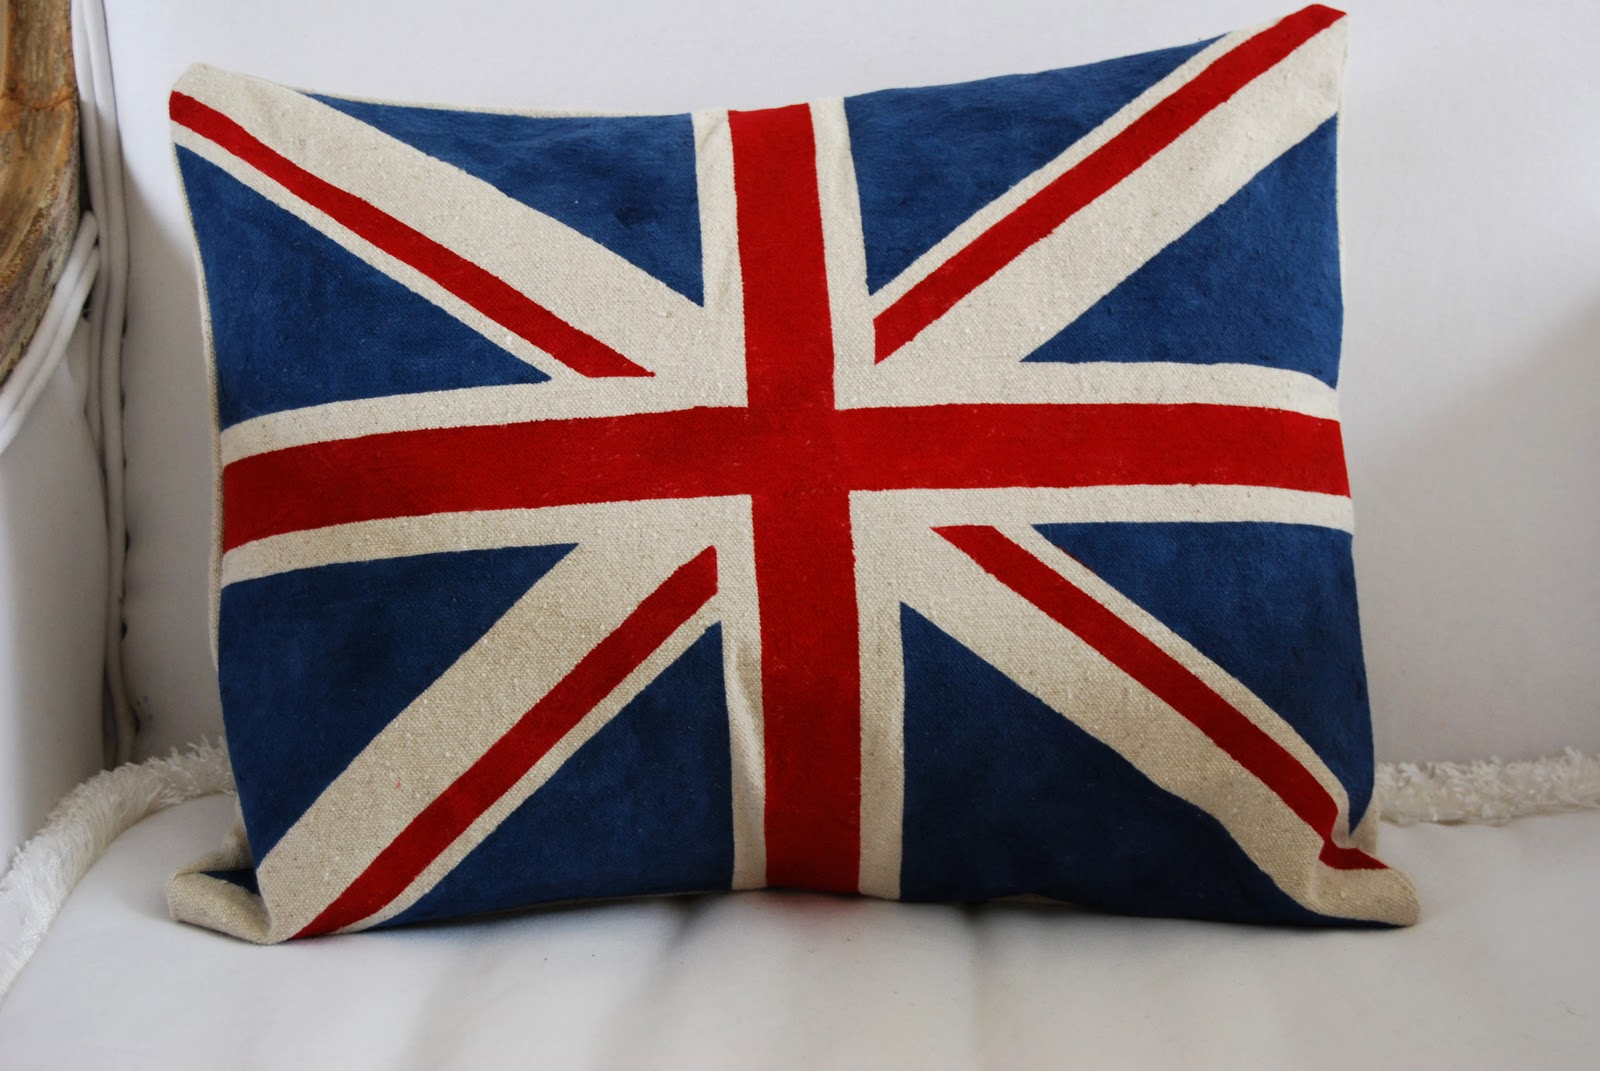 Knitting Pattern For Union Jack : Picture suggestion for Union Jack Pillow Knitting Pattern